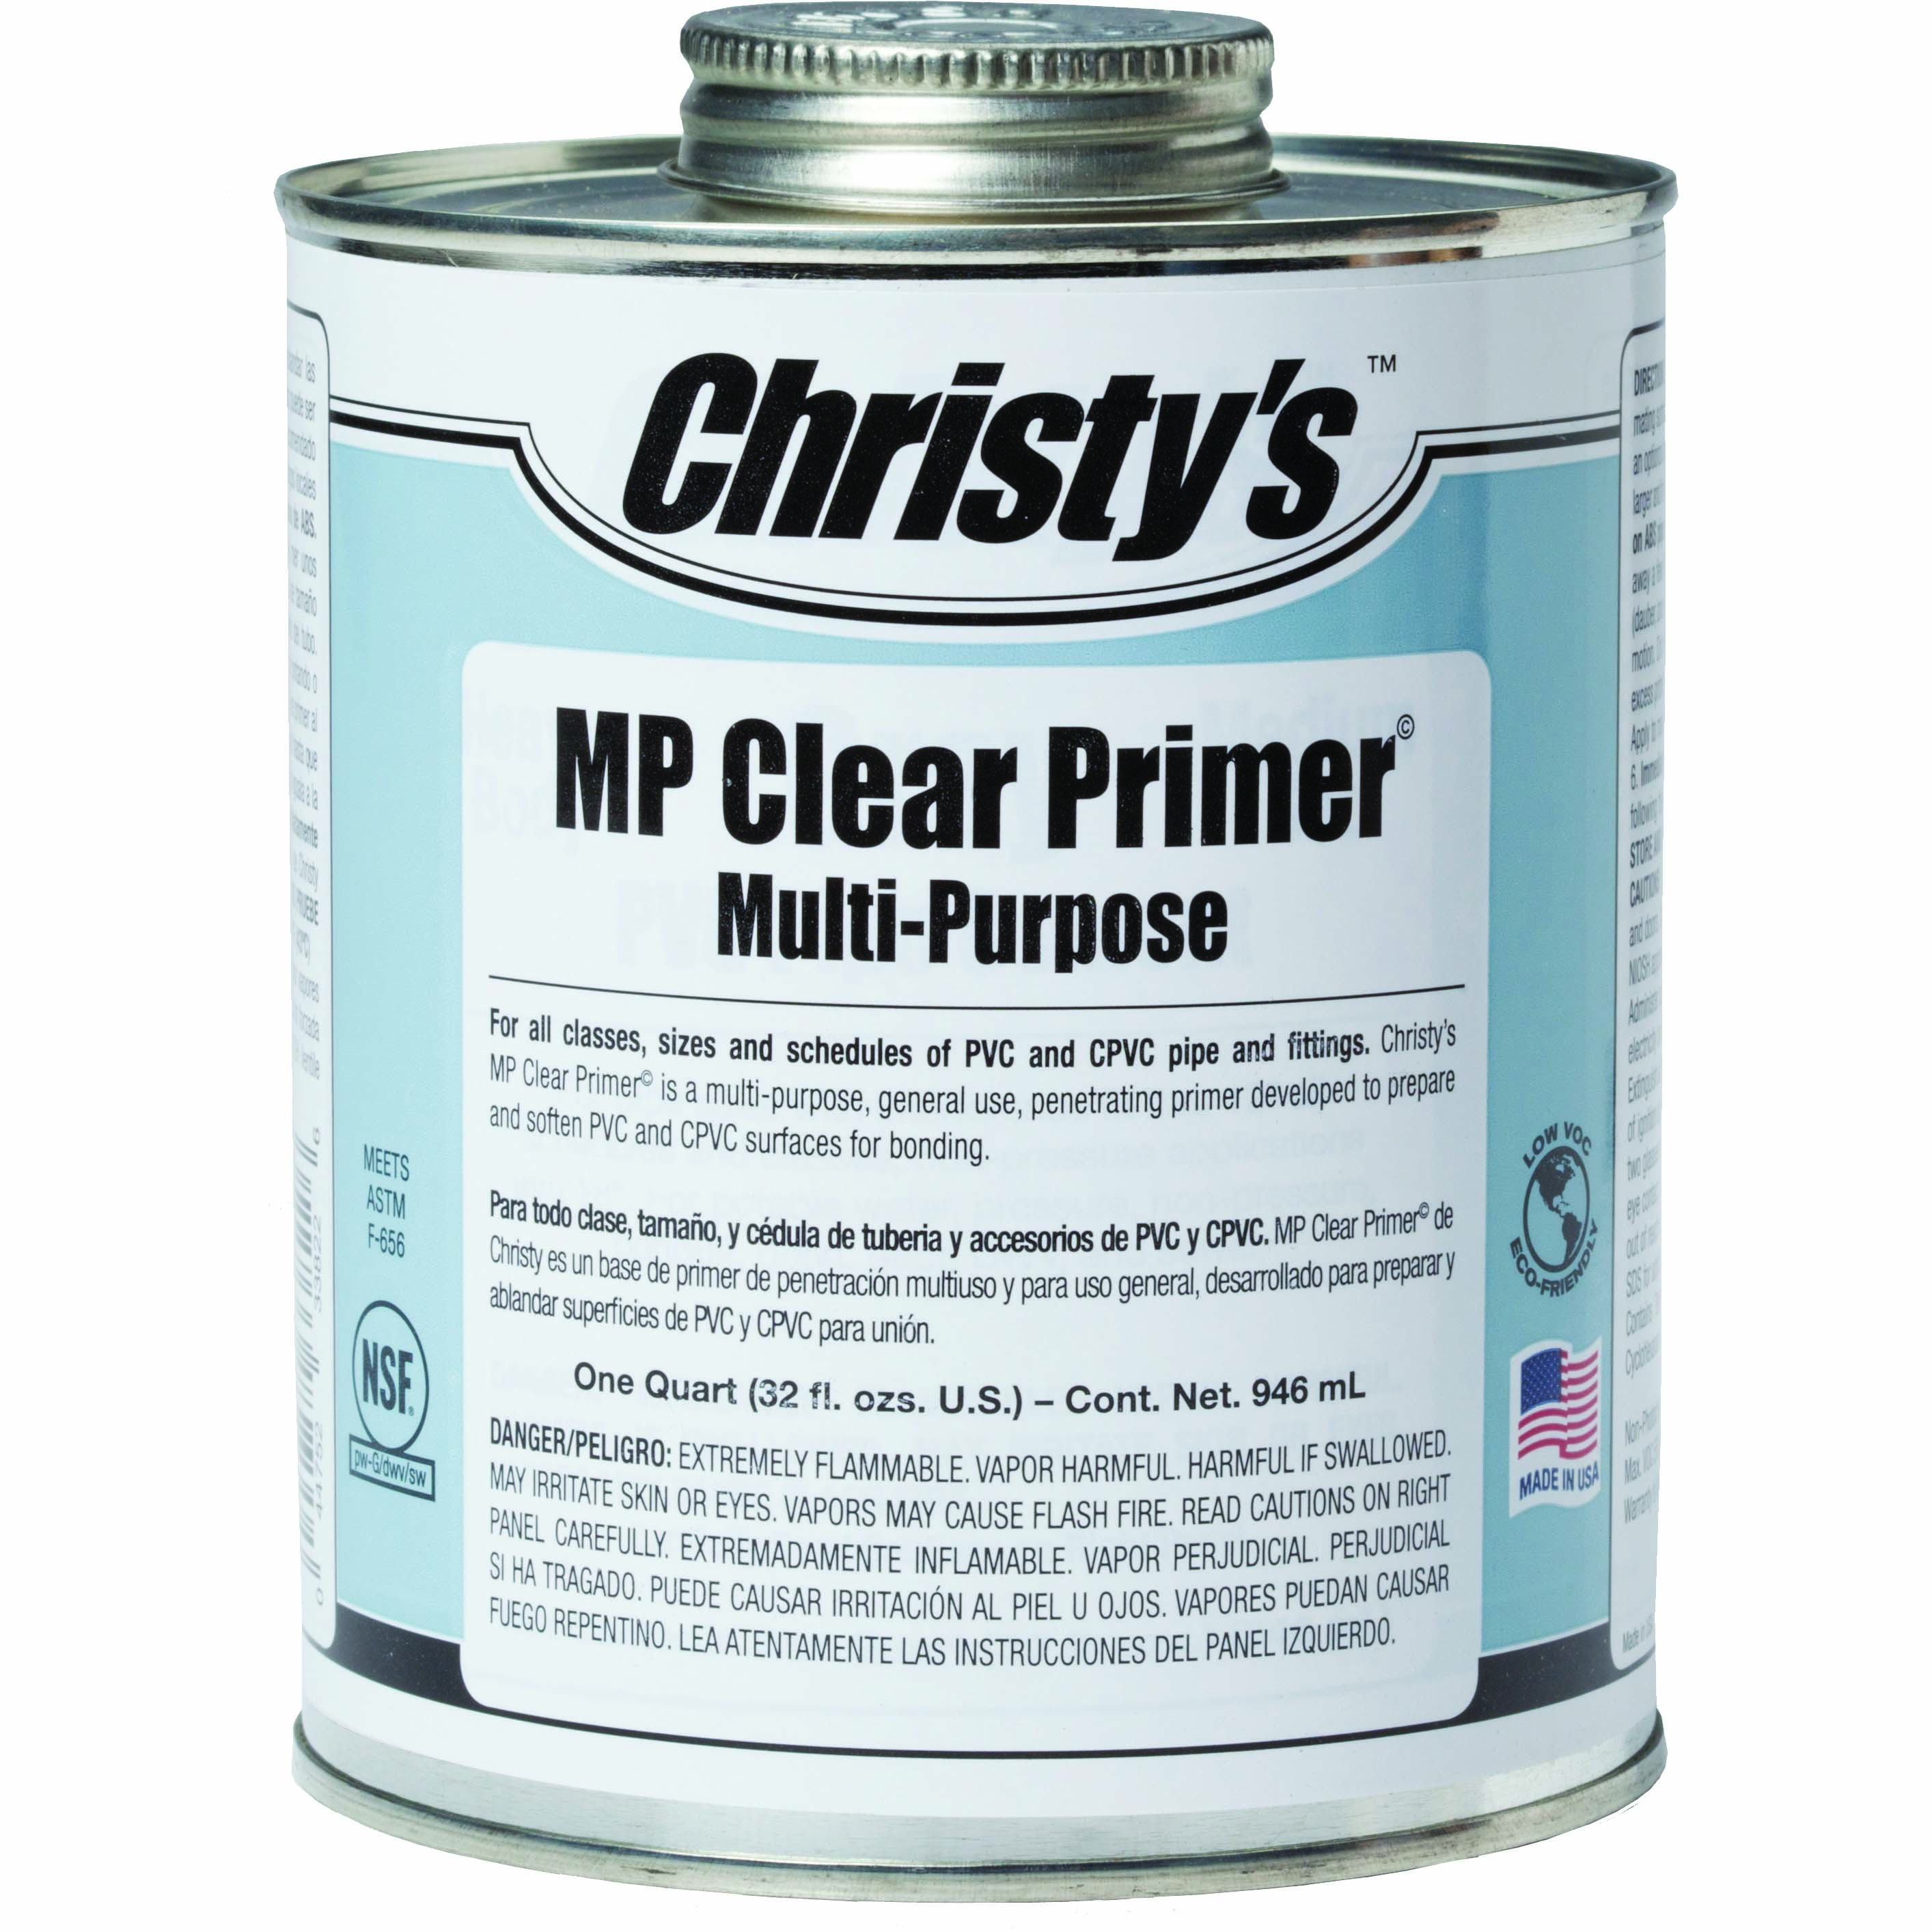 MP Clear Primer